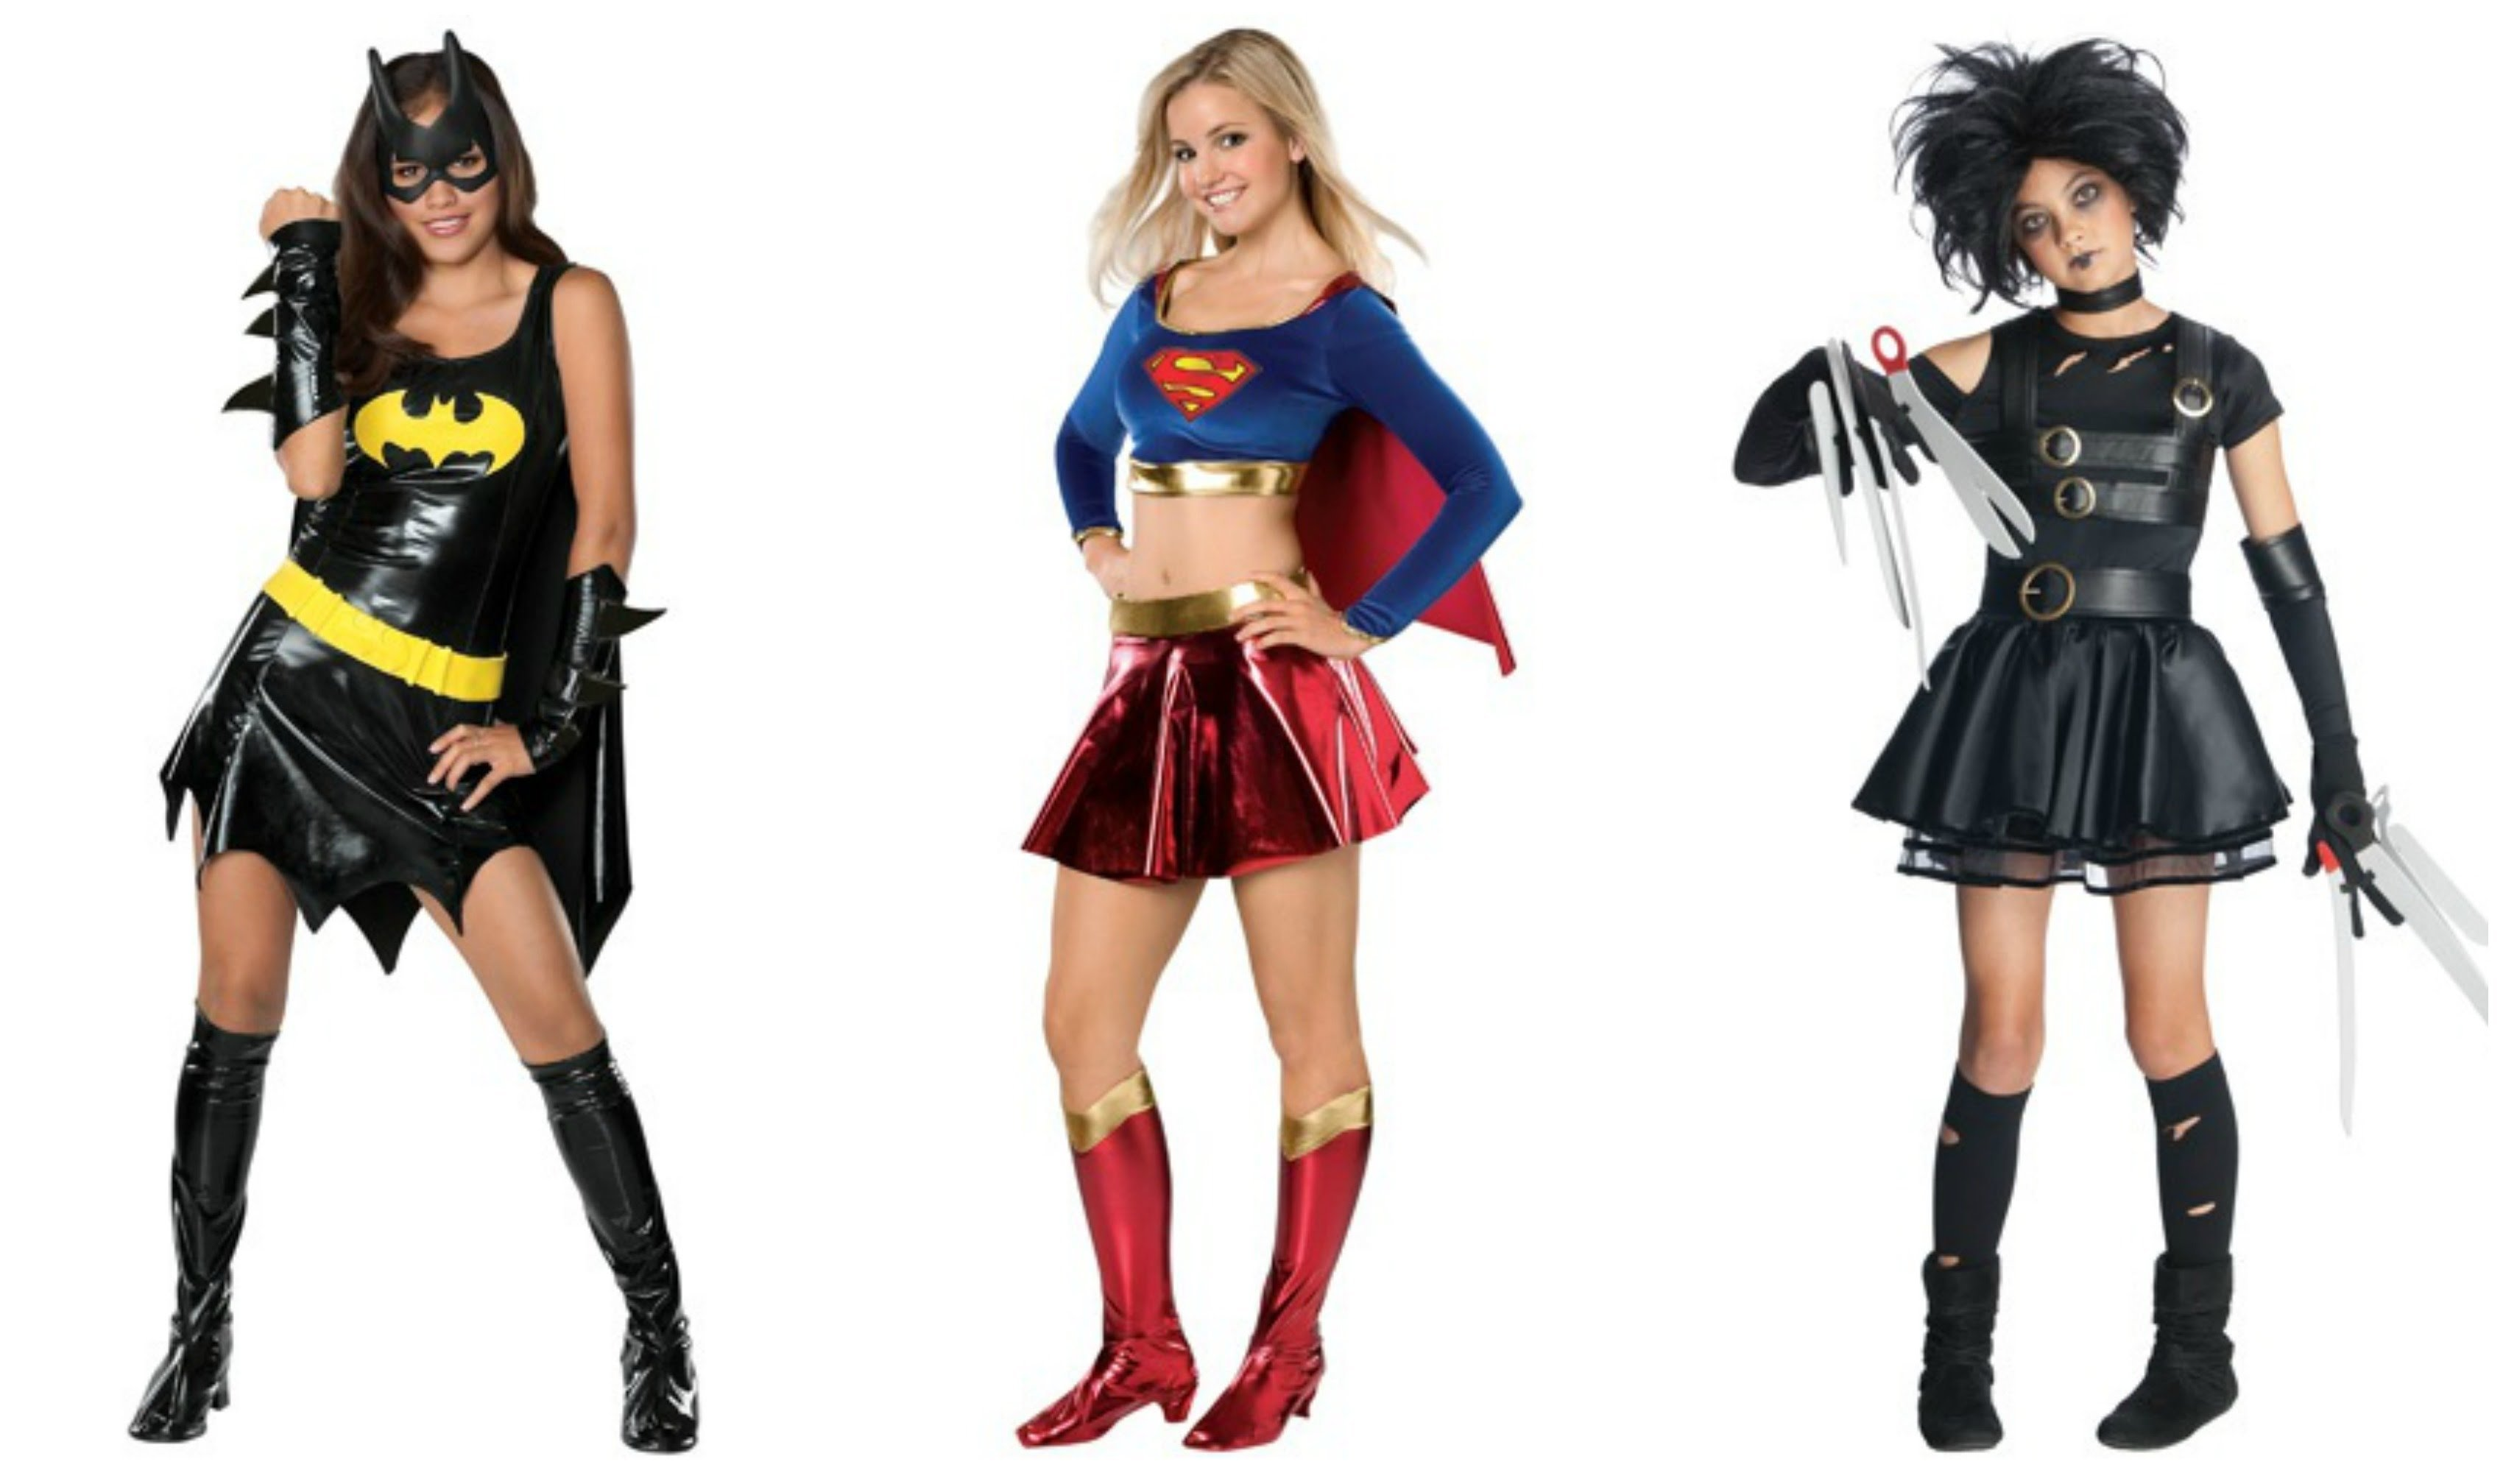 10 Amazing Halloween Costume Ideas Teenage Girls halloween costume ideas for teens girls youtube best teenage 11